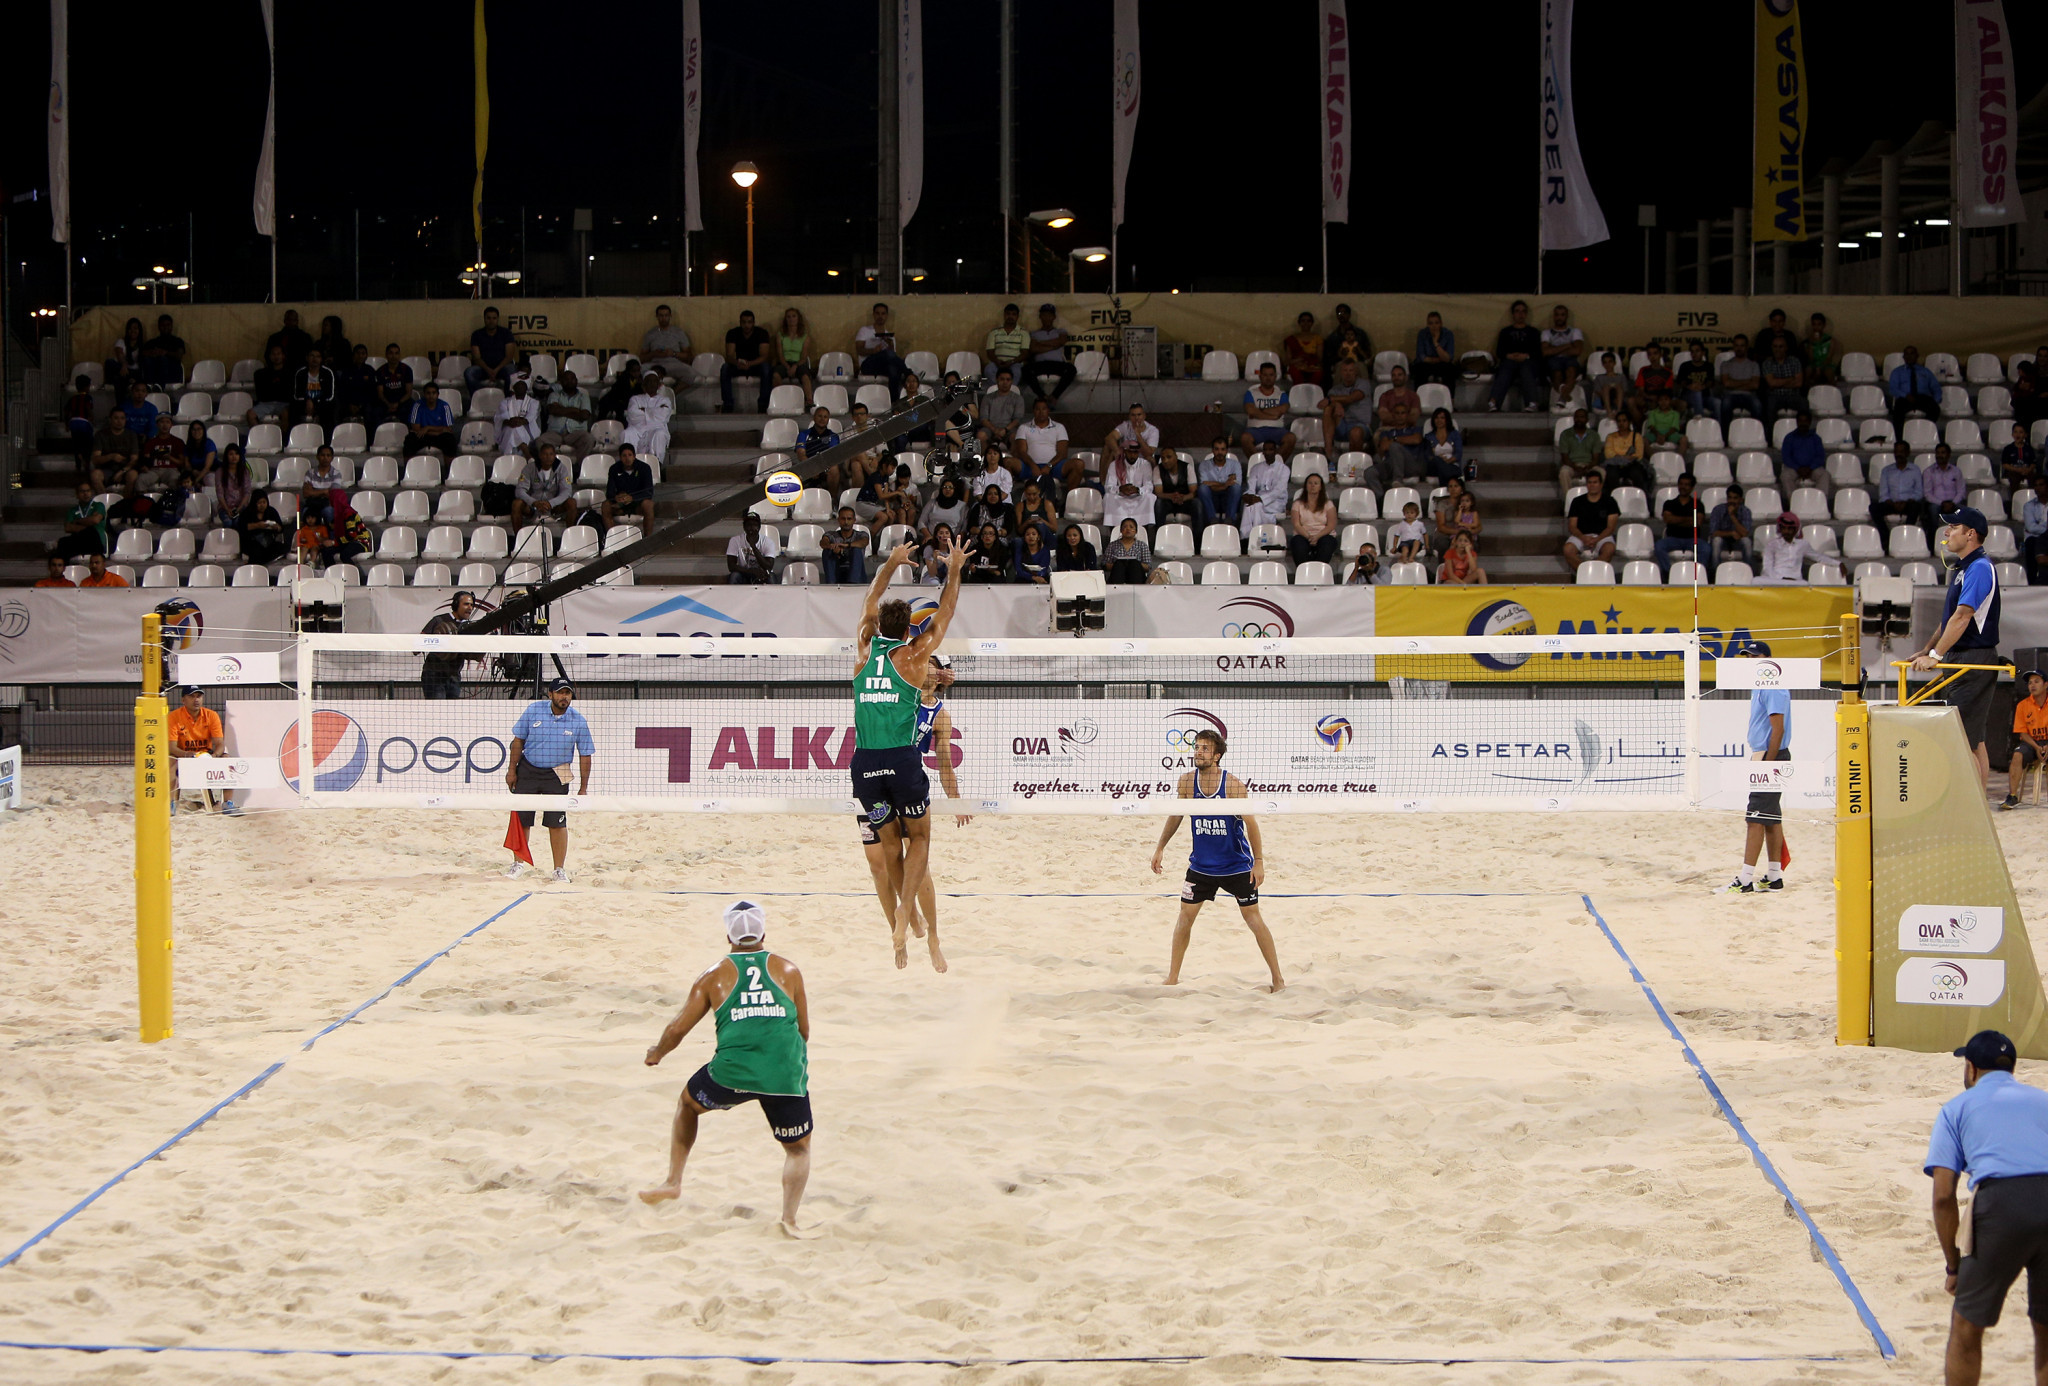 First FIVB Beach World Tour event of 2021 to begin in Doha